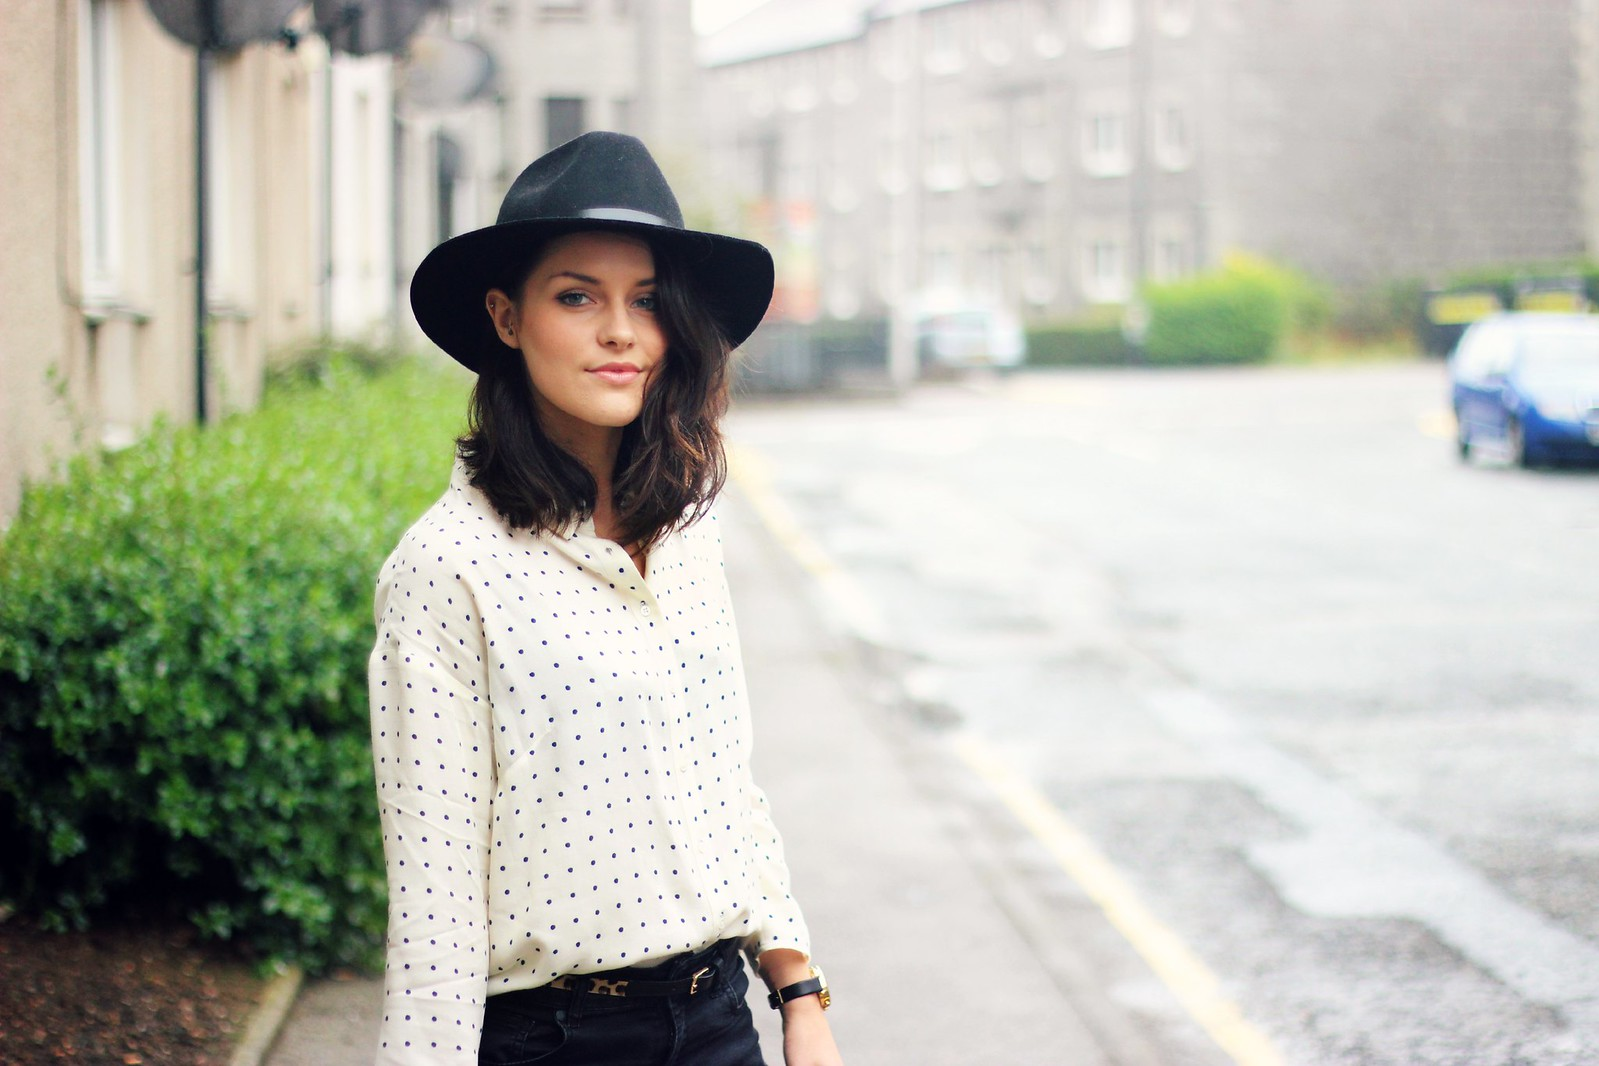 Jigsaw autumn winter polka dot shirt 5